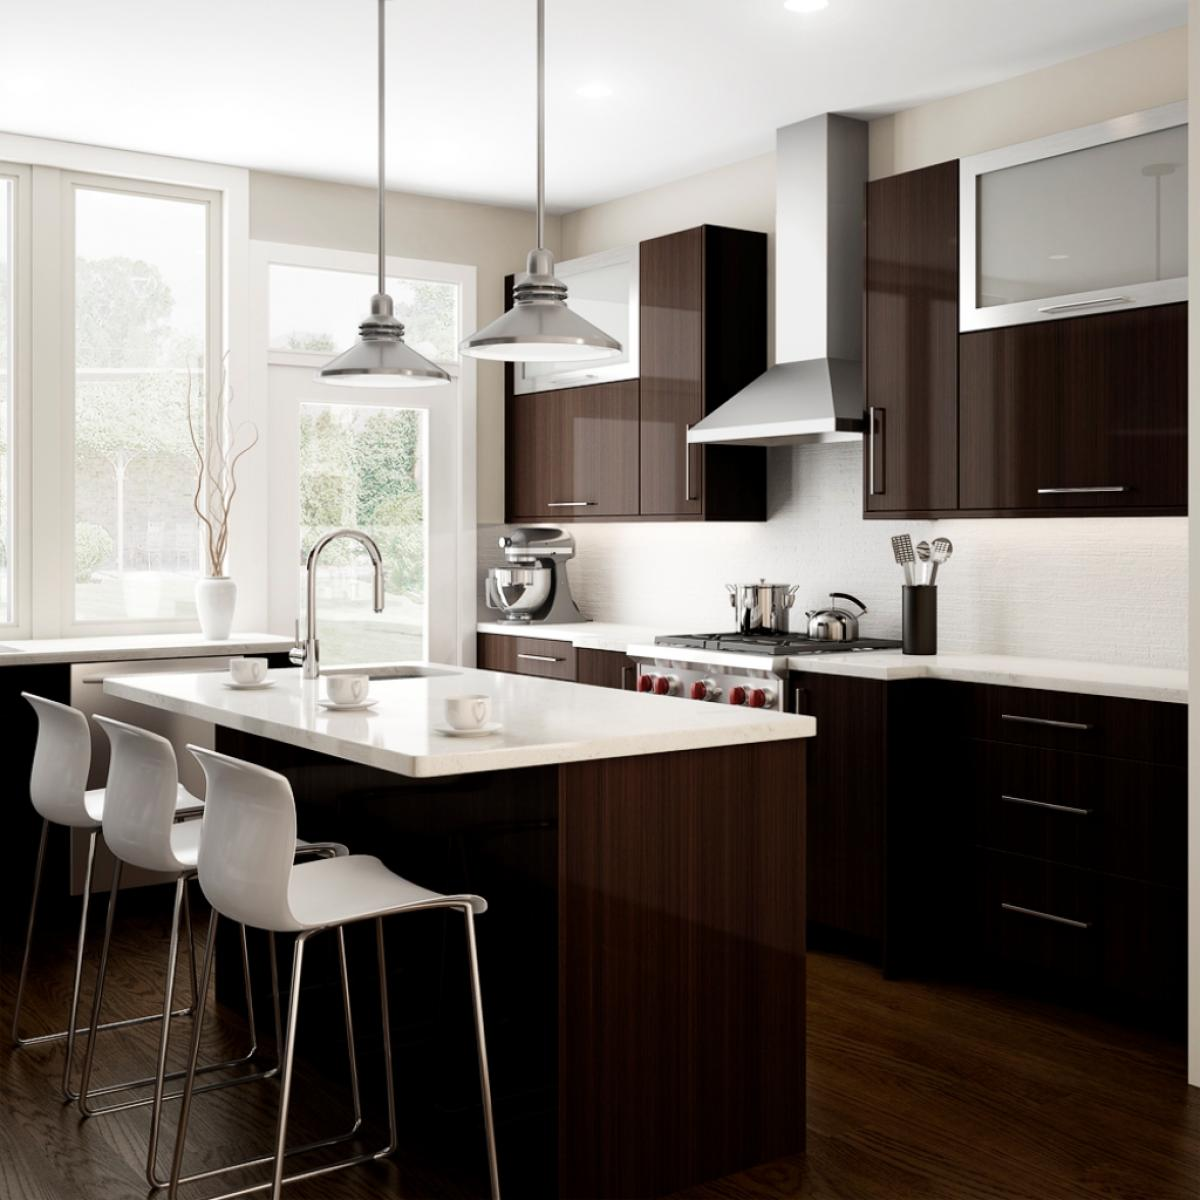 Cuisine Blanc Et Marron: Modern-luxurious-small-kitchen-design-with-small-kitchen